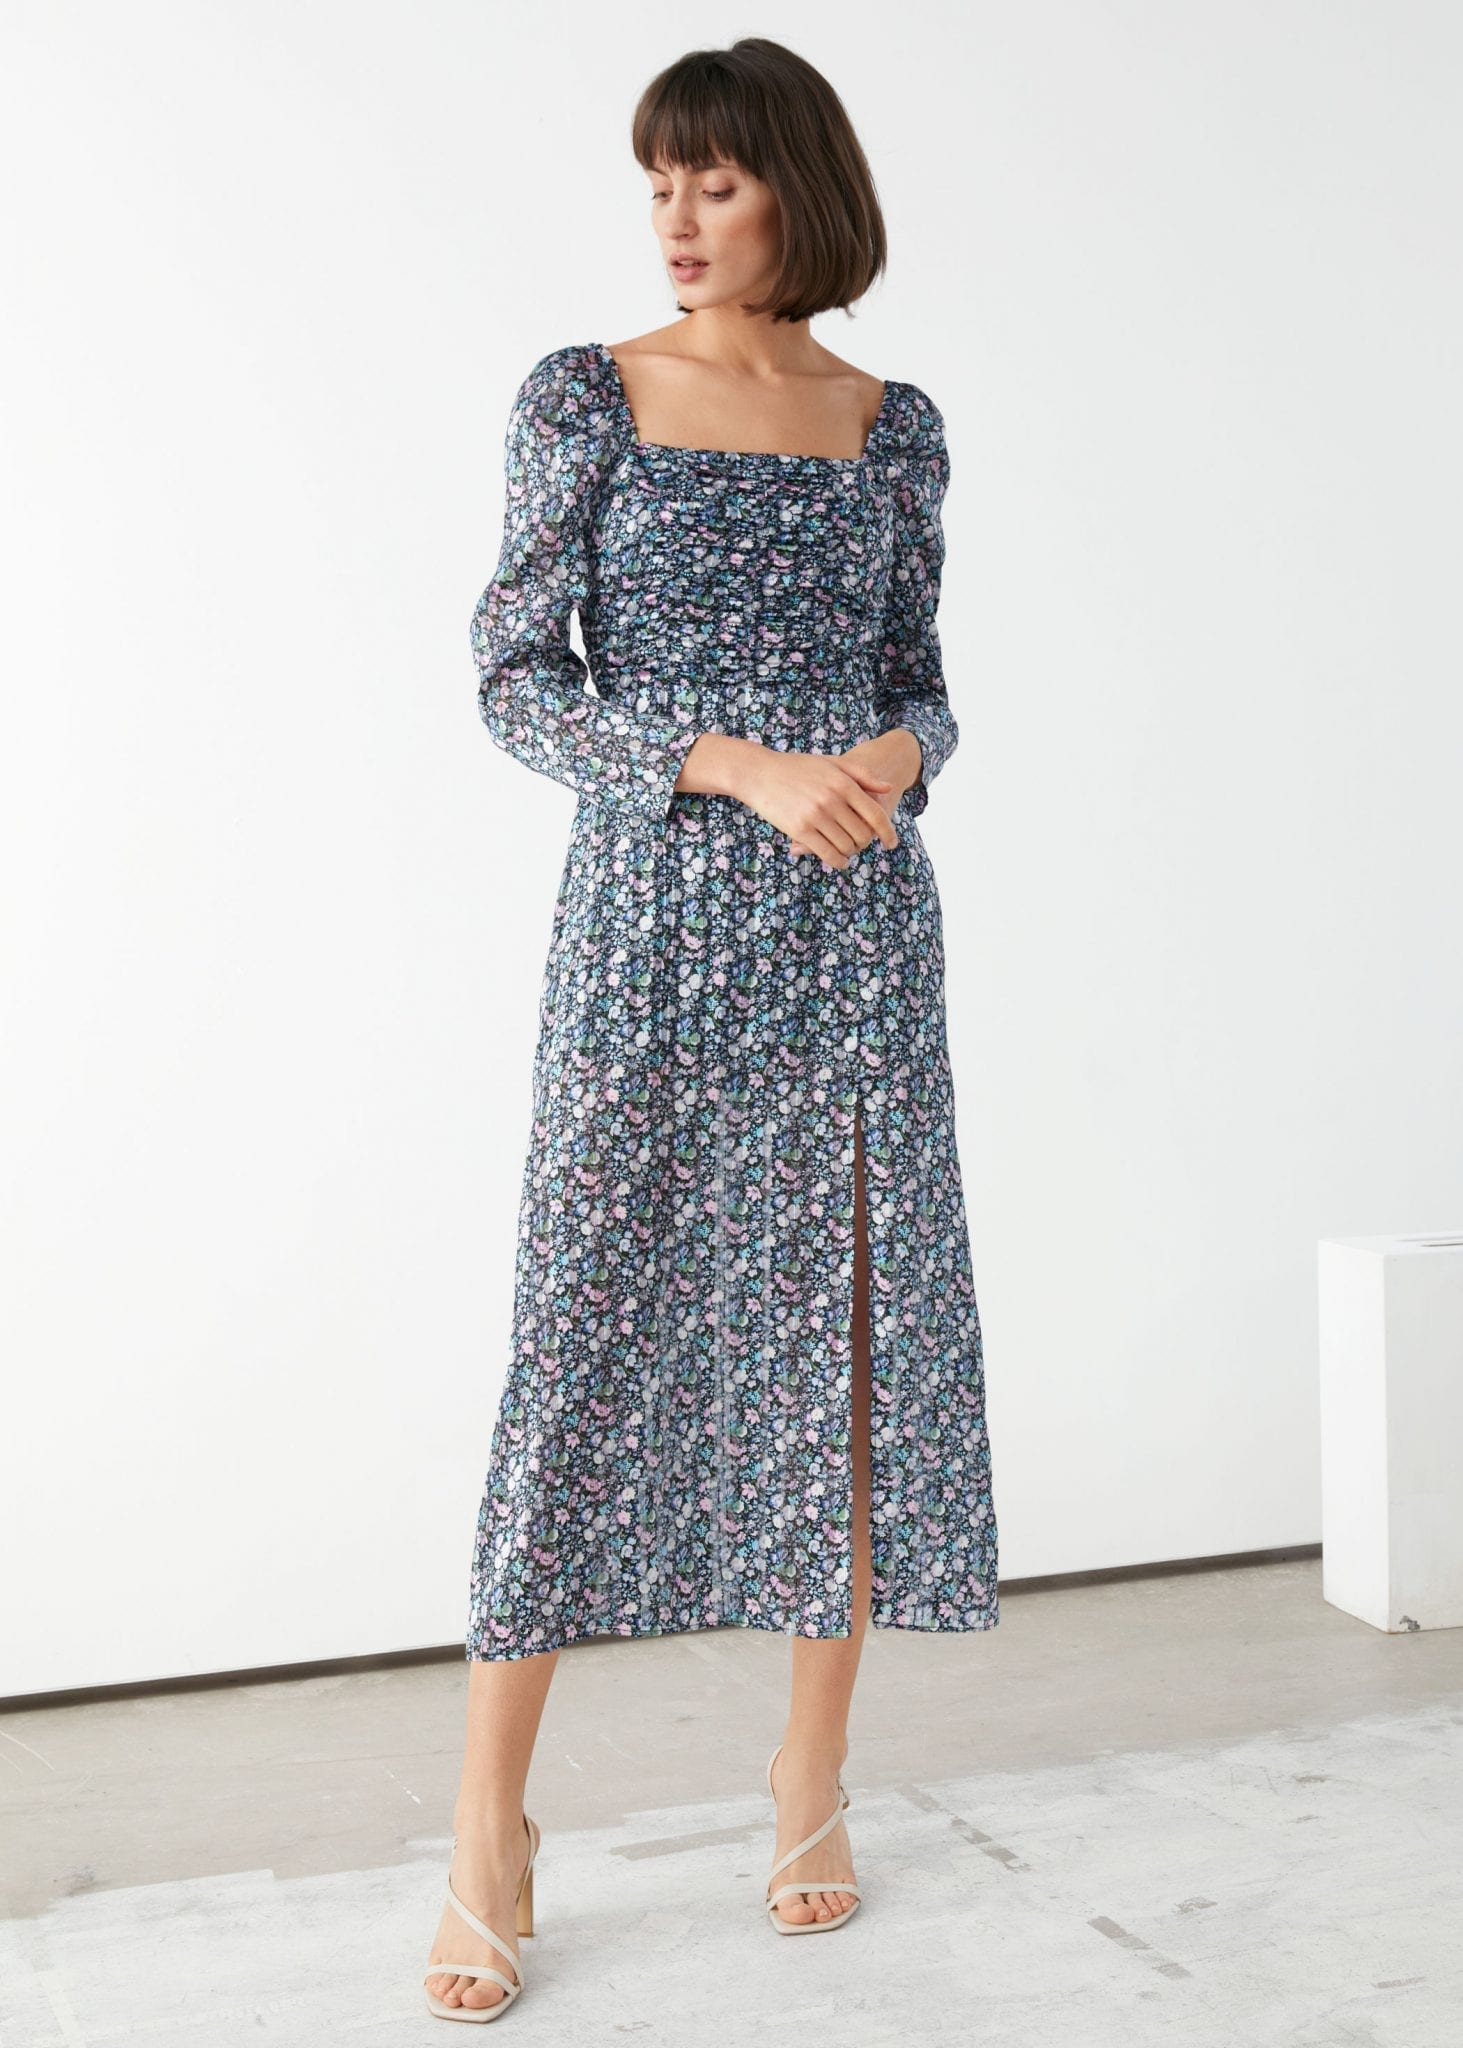 AND OTHER STORIES Square Neck Floral Midi Dress